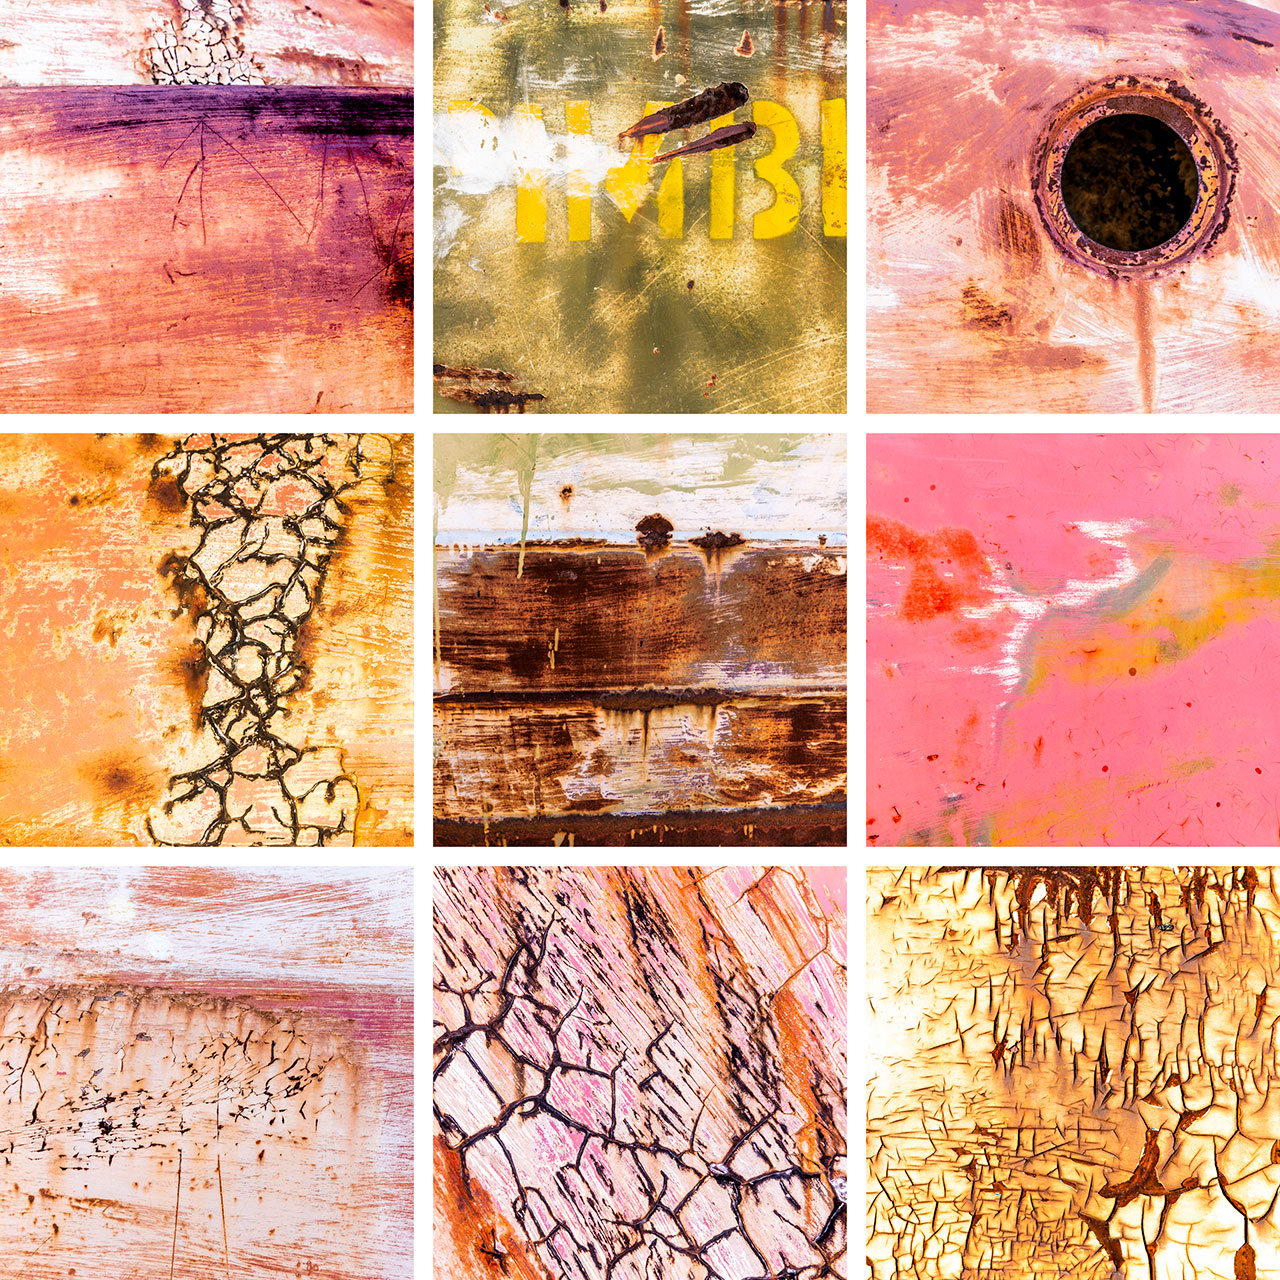 Textures and patterns in metal and paint in the outback